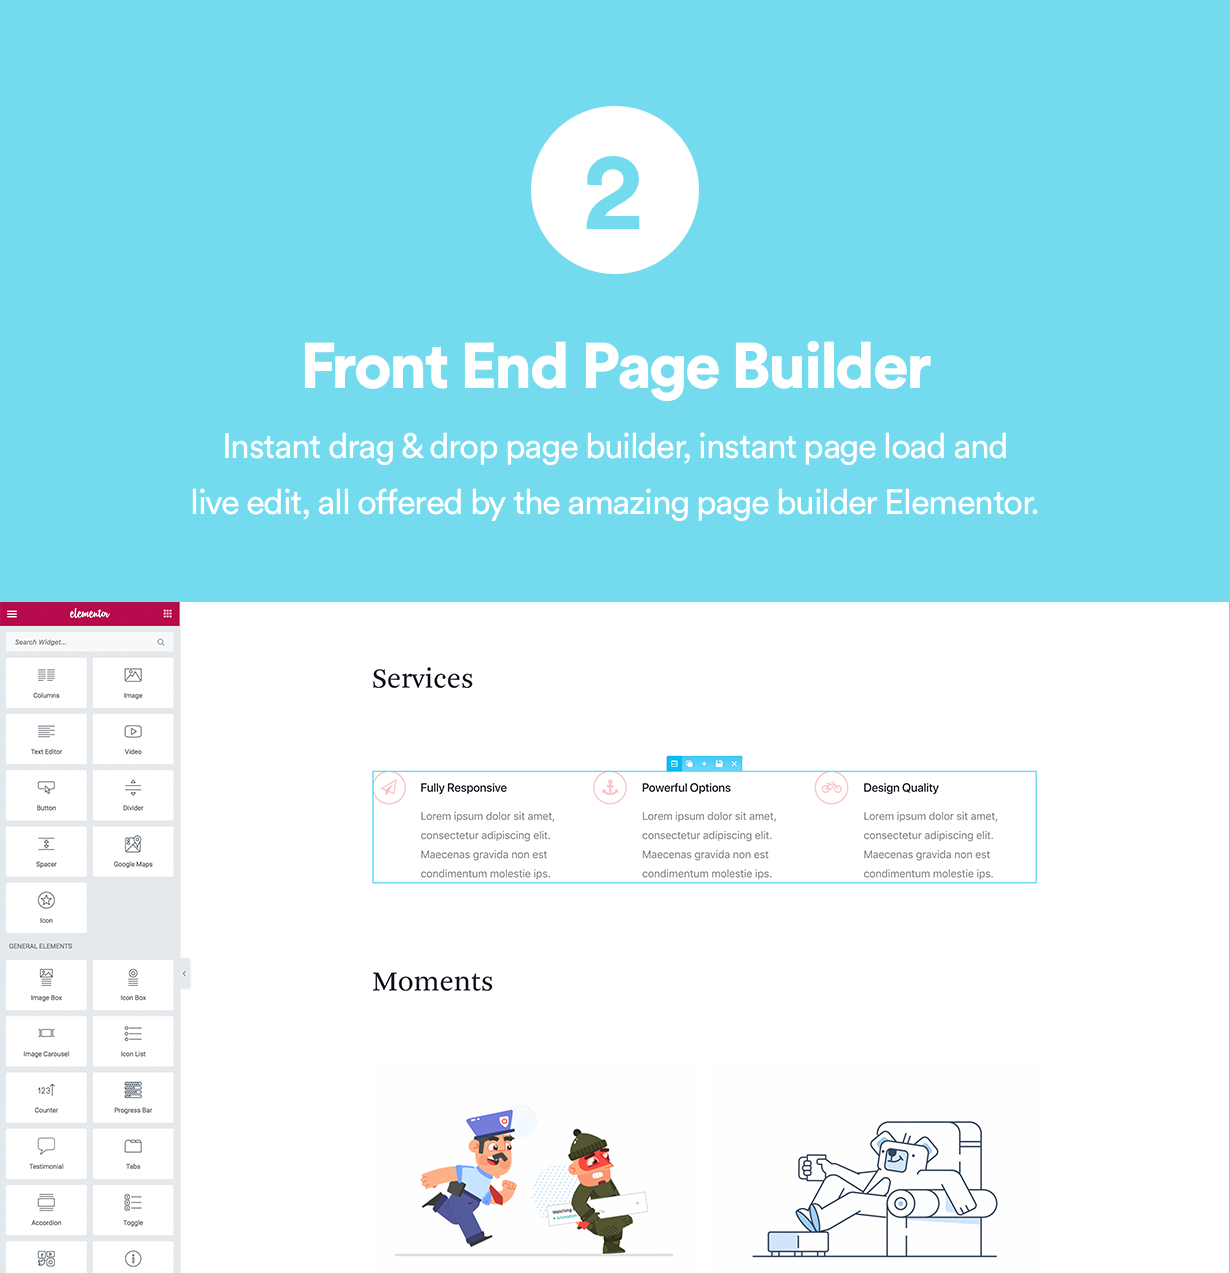 Front End Page Builder